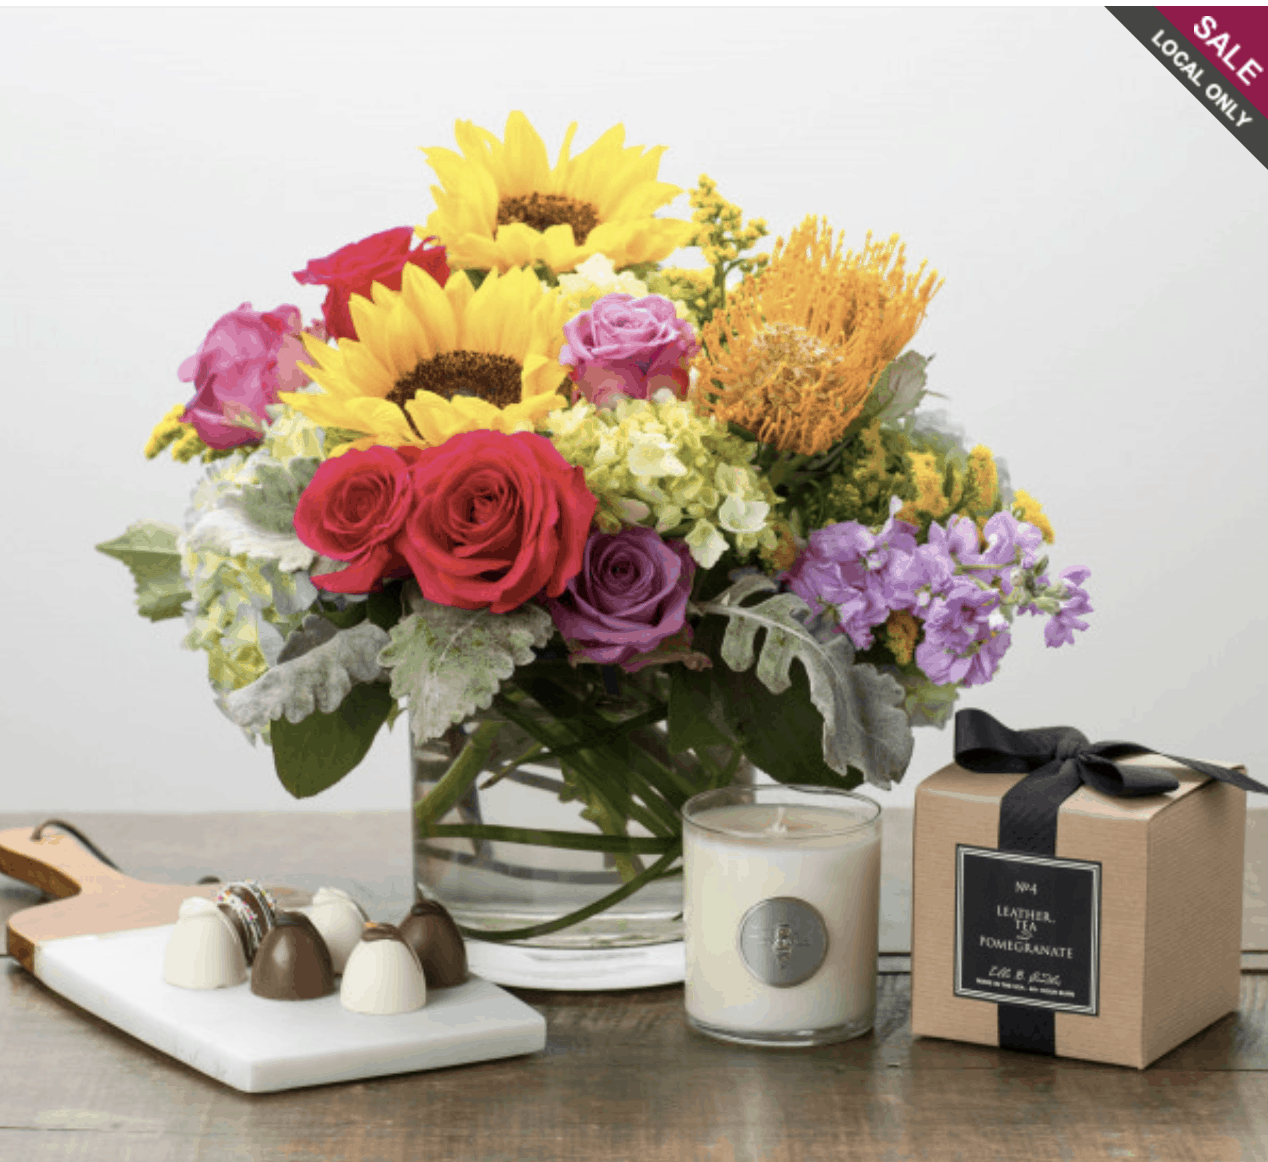 Make Someone's Day with Flowers and Gifts From Bussey's!